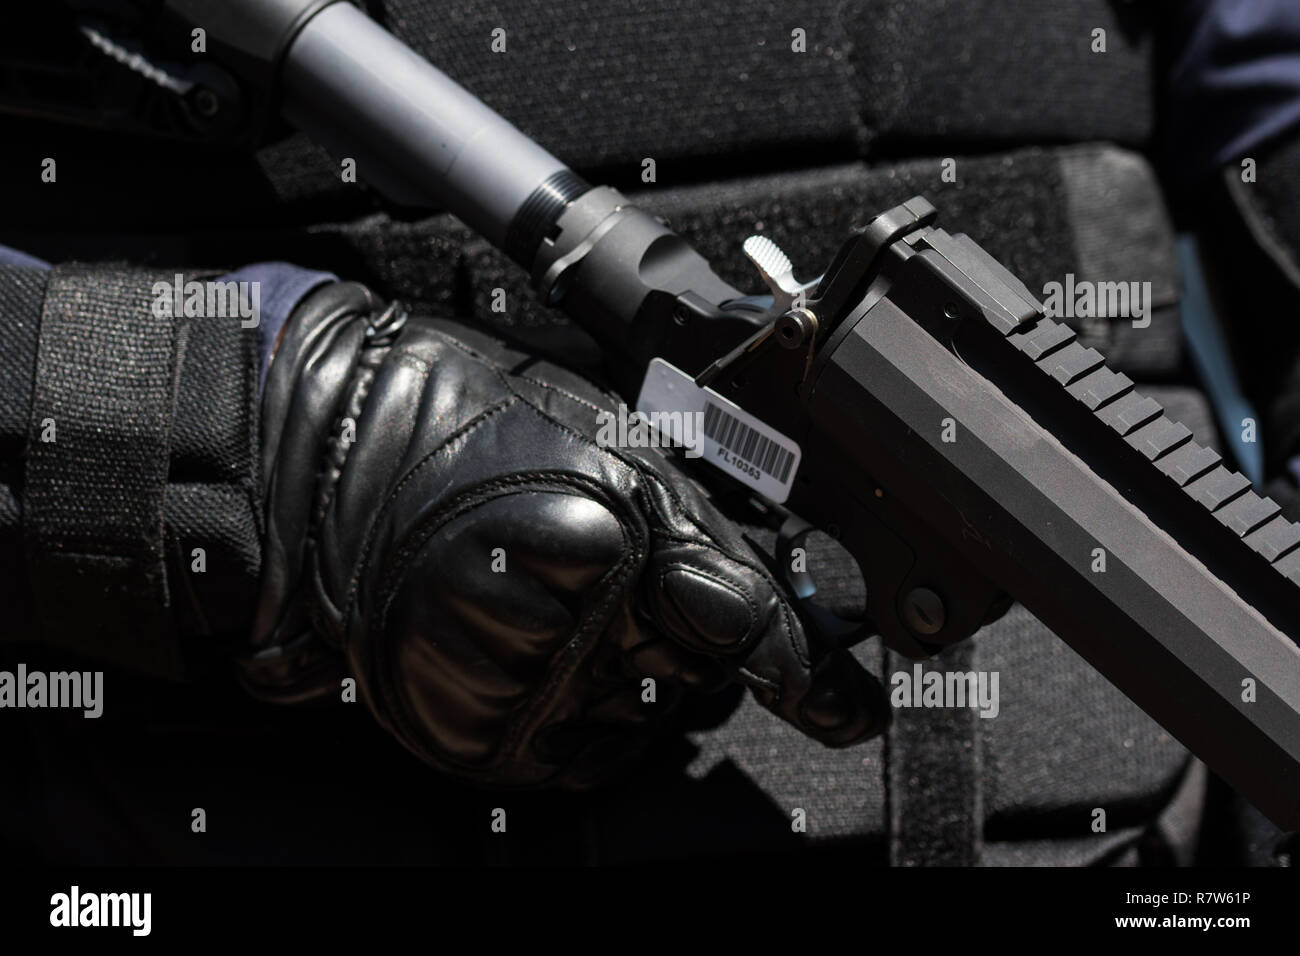 Riot police with tear gas , face shields and body armor gear up to protect KKK from protesters - Stock Image